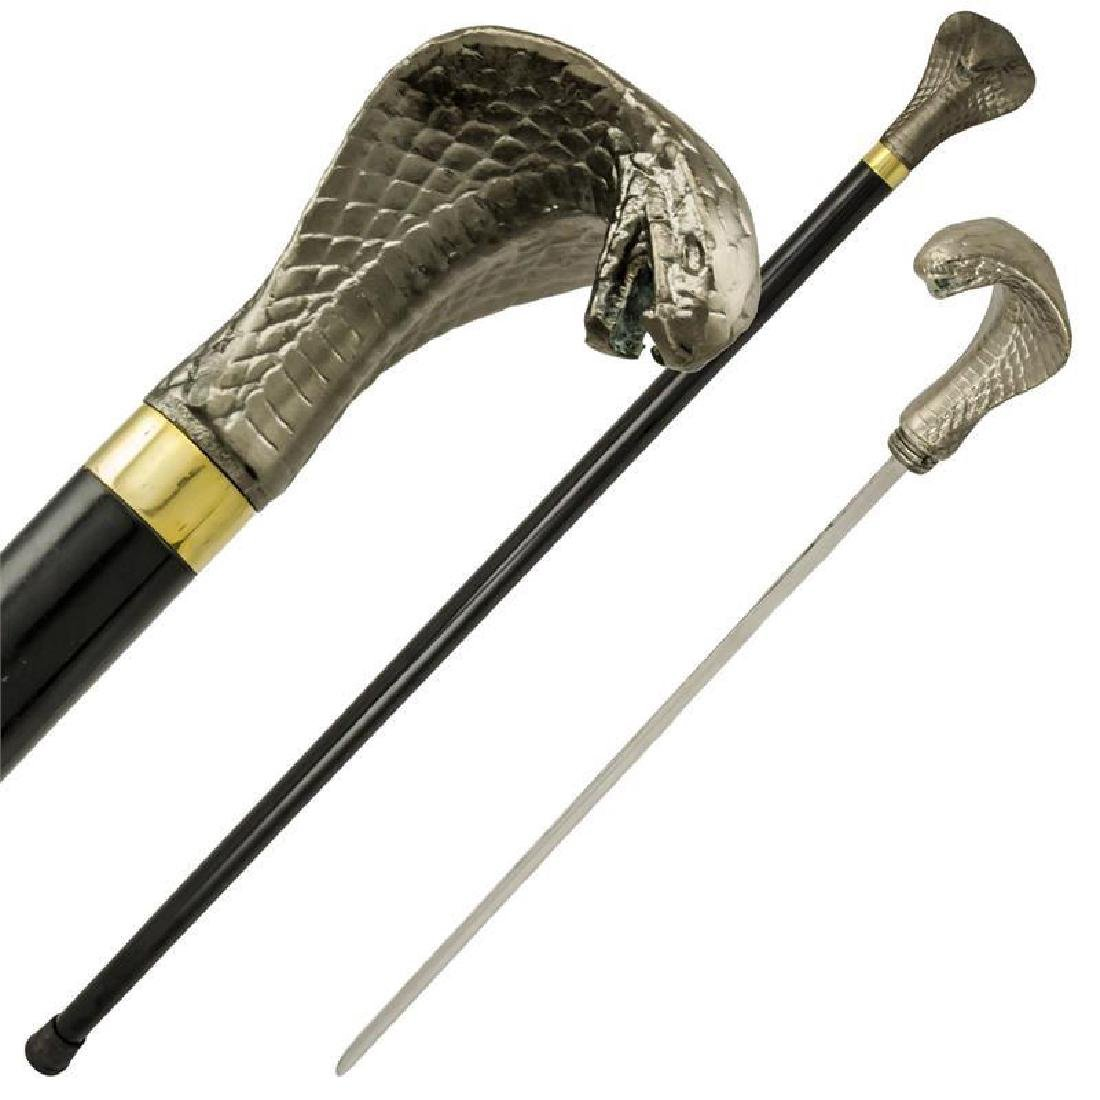 Cobra Head Walking Cane Sword